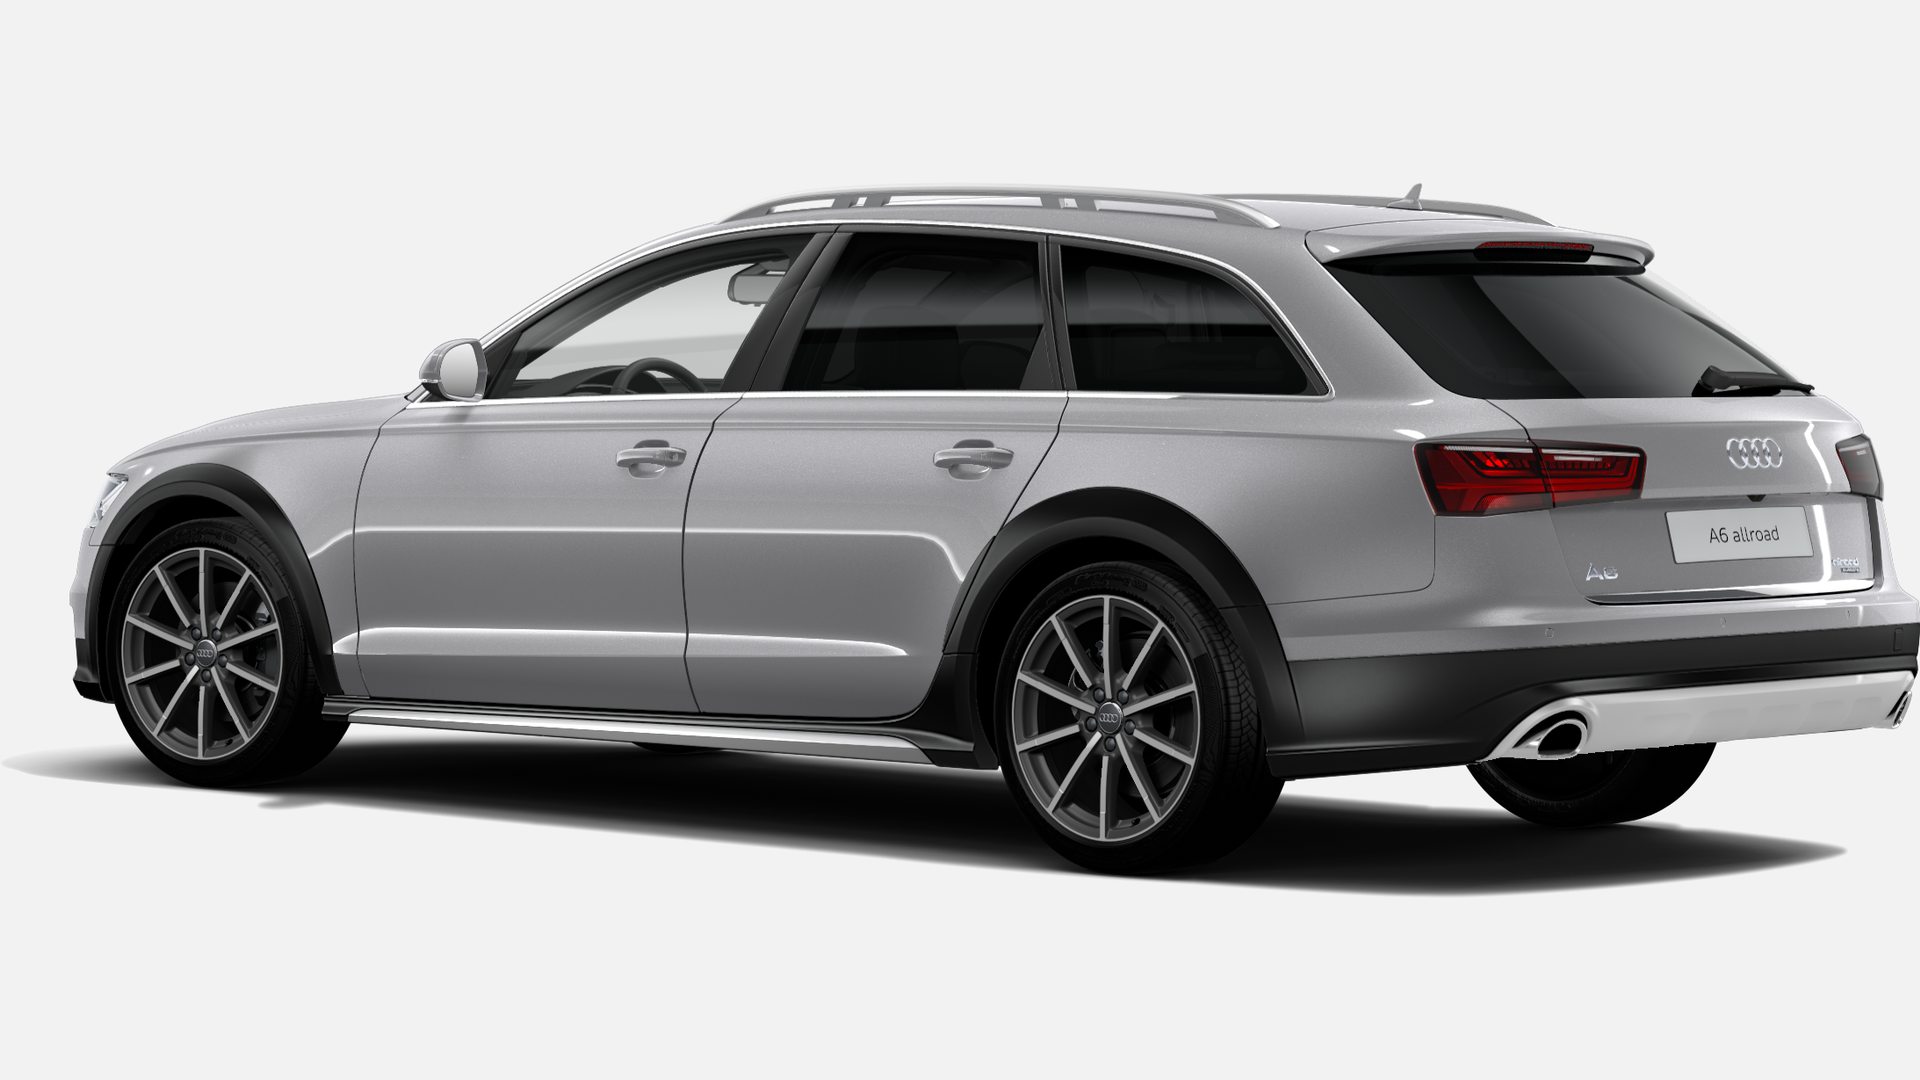 Audi A6 Allroad 3.0 TDI Advanced edition quattro S tronic 200 kW (272 CV)